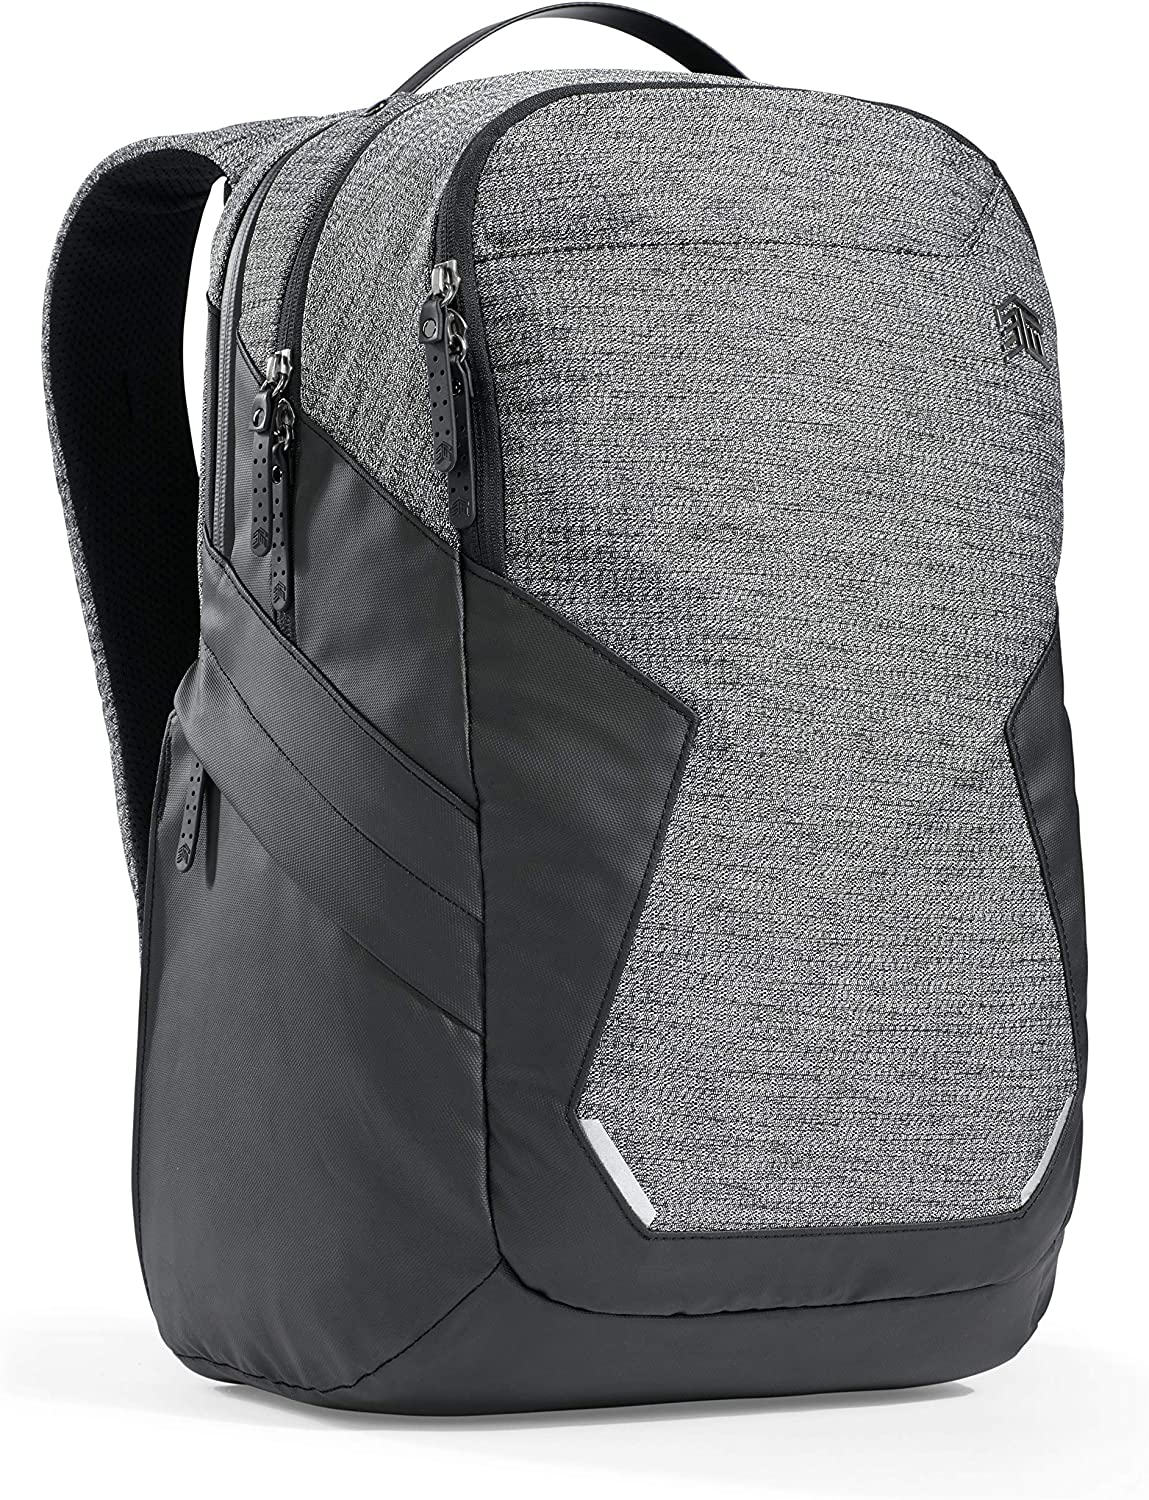 """STM Myth Backpack Featuring Luggage Pass-Through 28L / 15"""" Laptop - Granite Black (stm-117-187P-01)"""